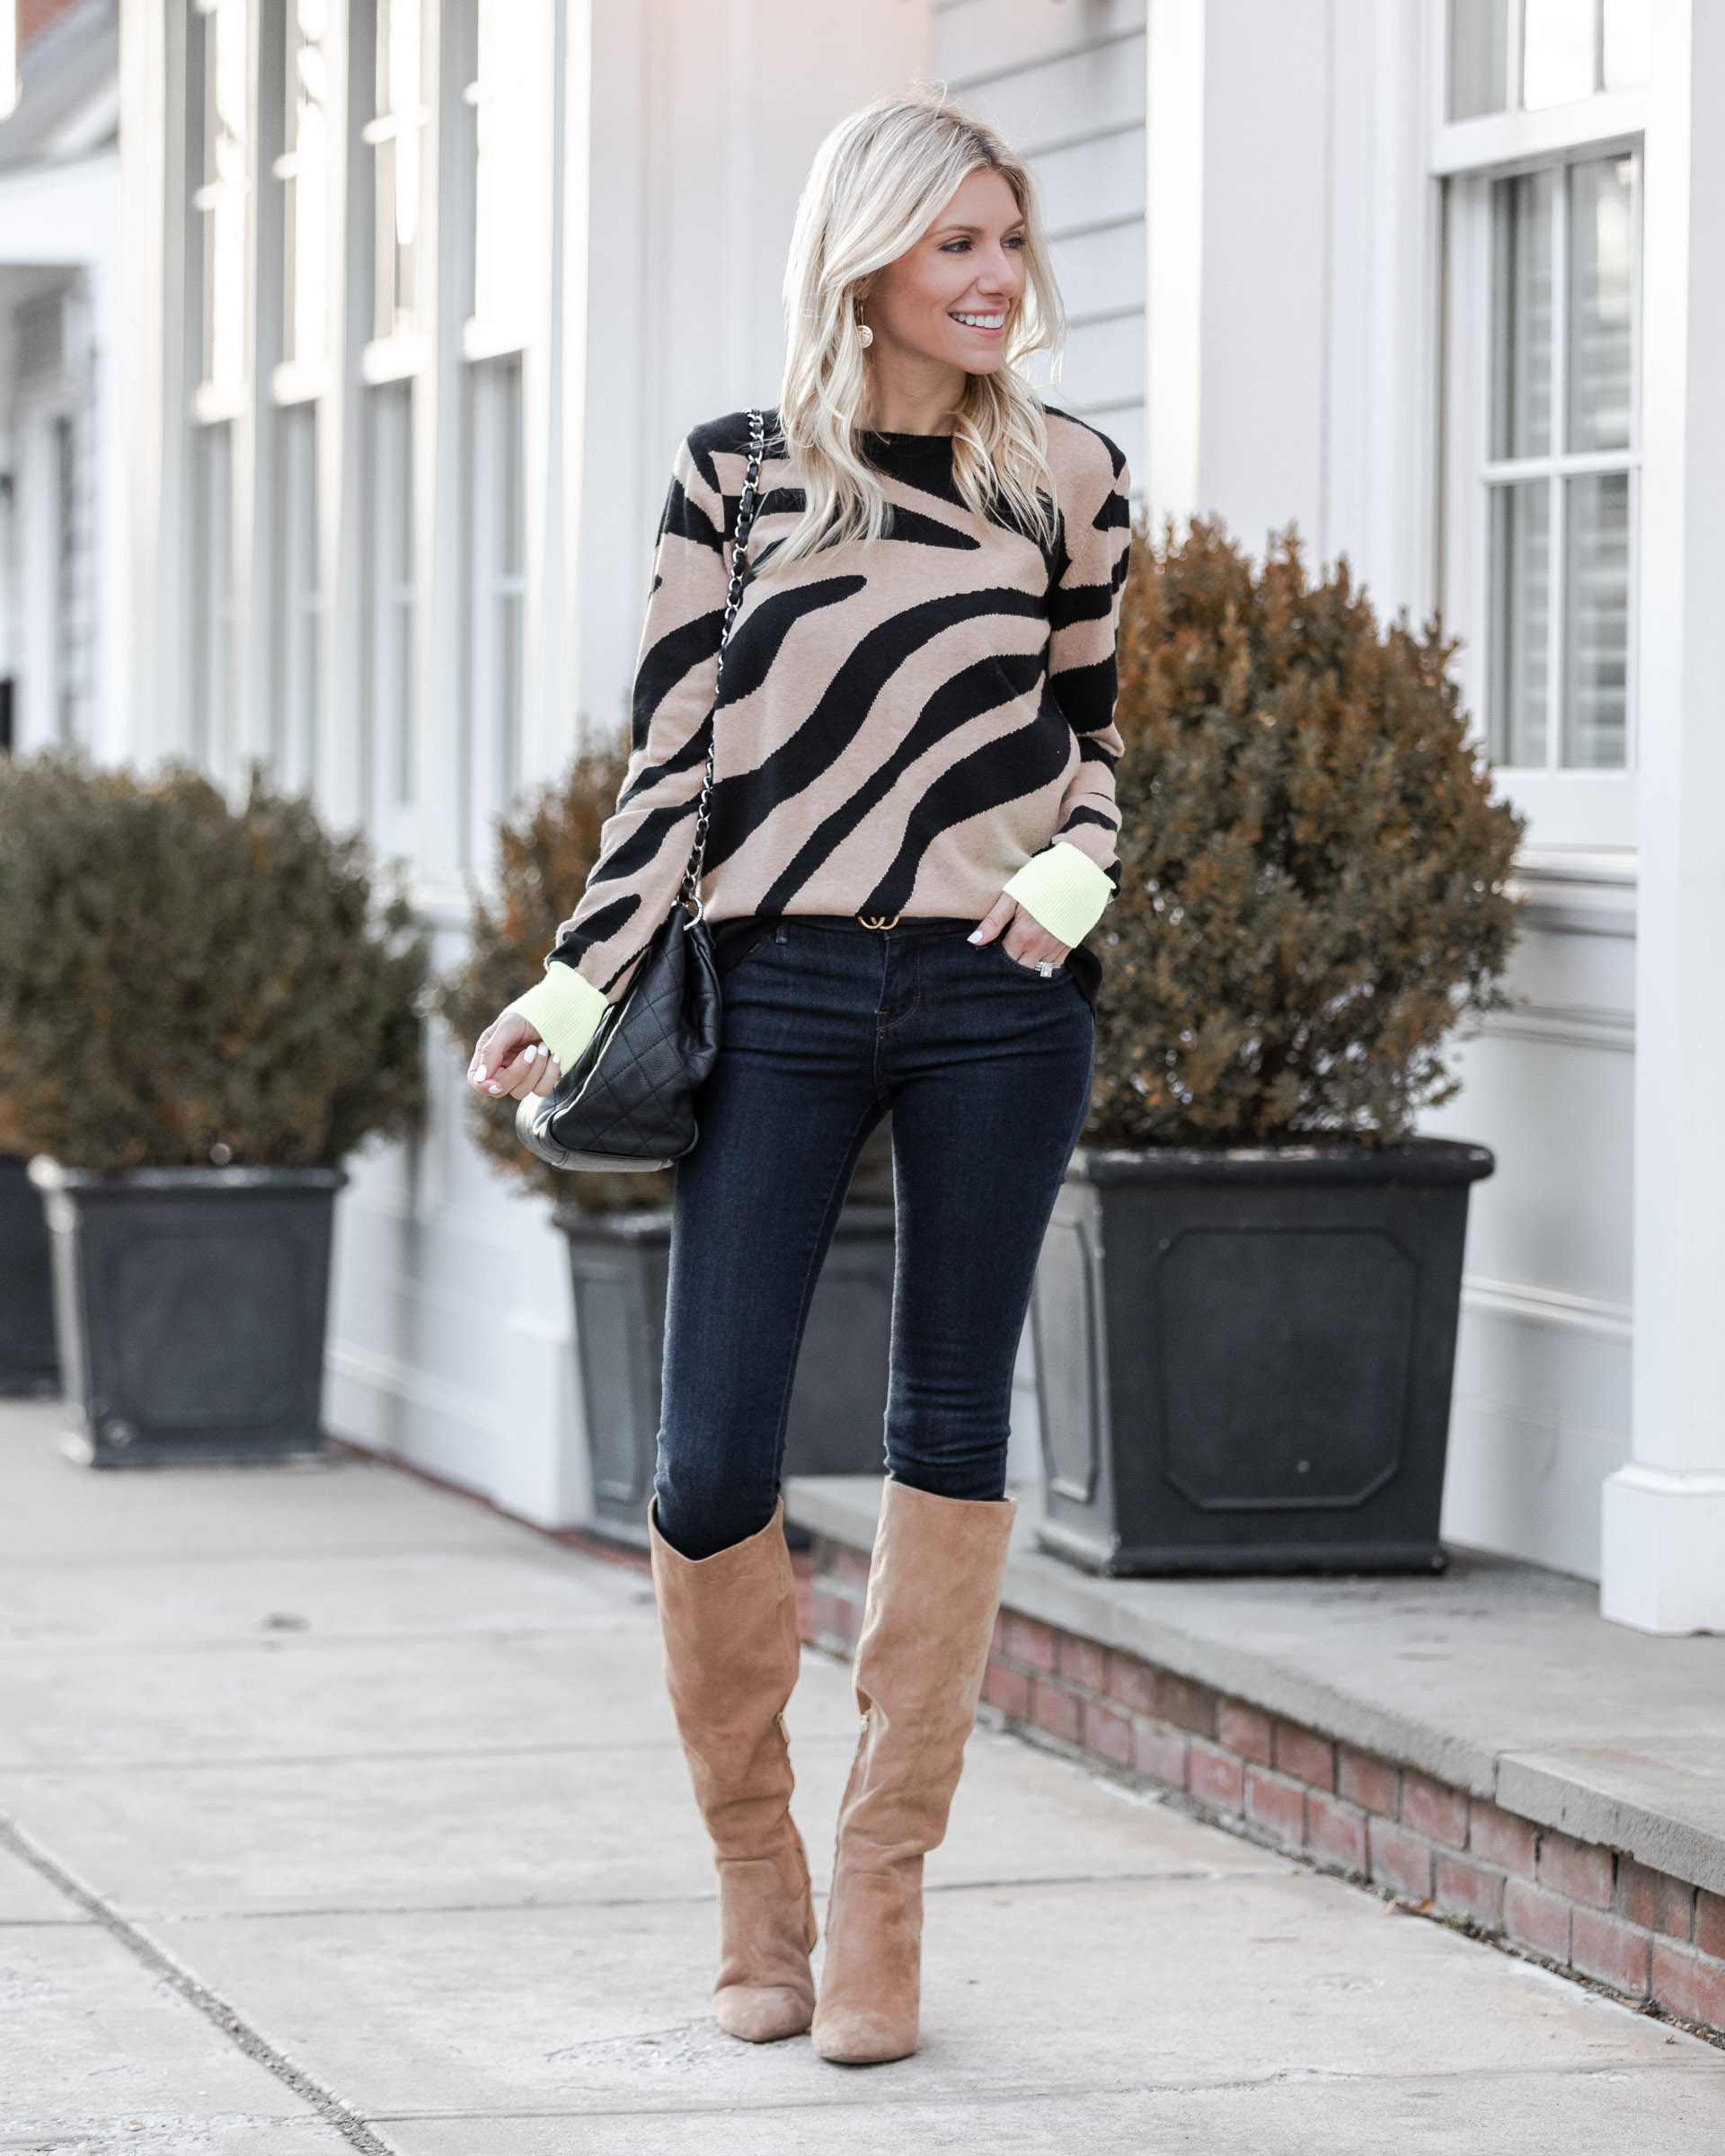 zebra-sweater-with-neon-details-the-glamorous-gal